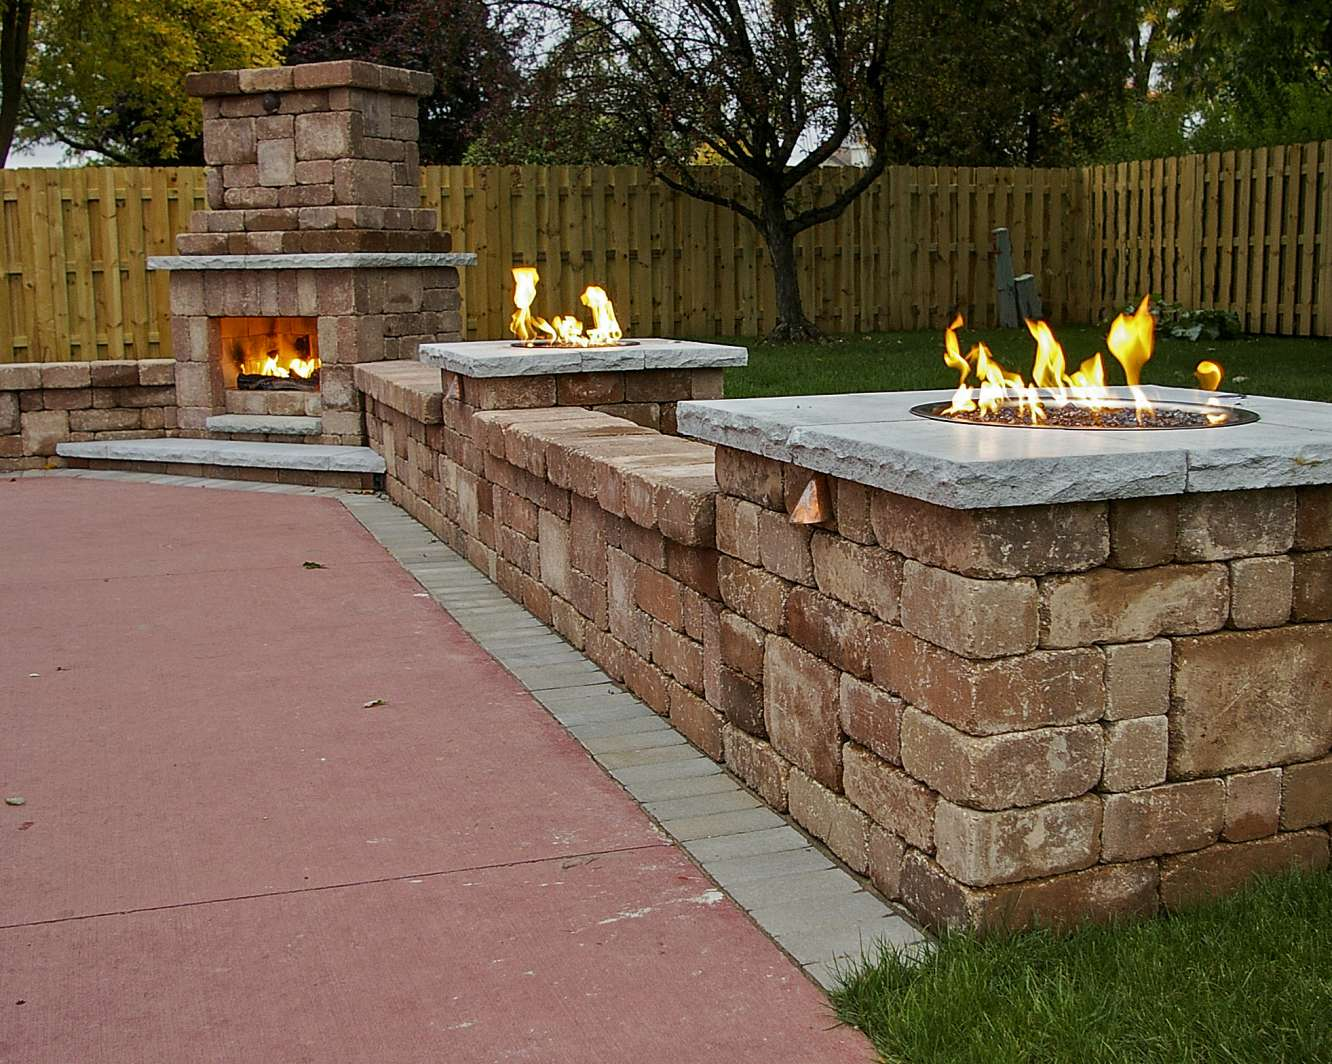 Outdoor Fireplace Landscaping Design in Appleton, WI on Fireplace In Yard id=51027